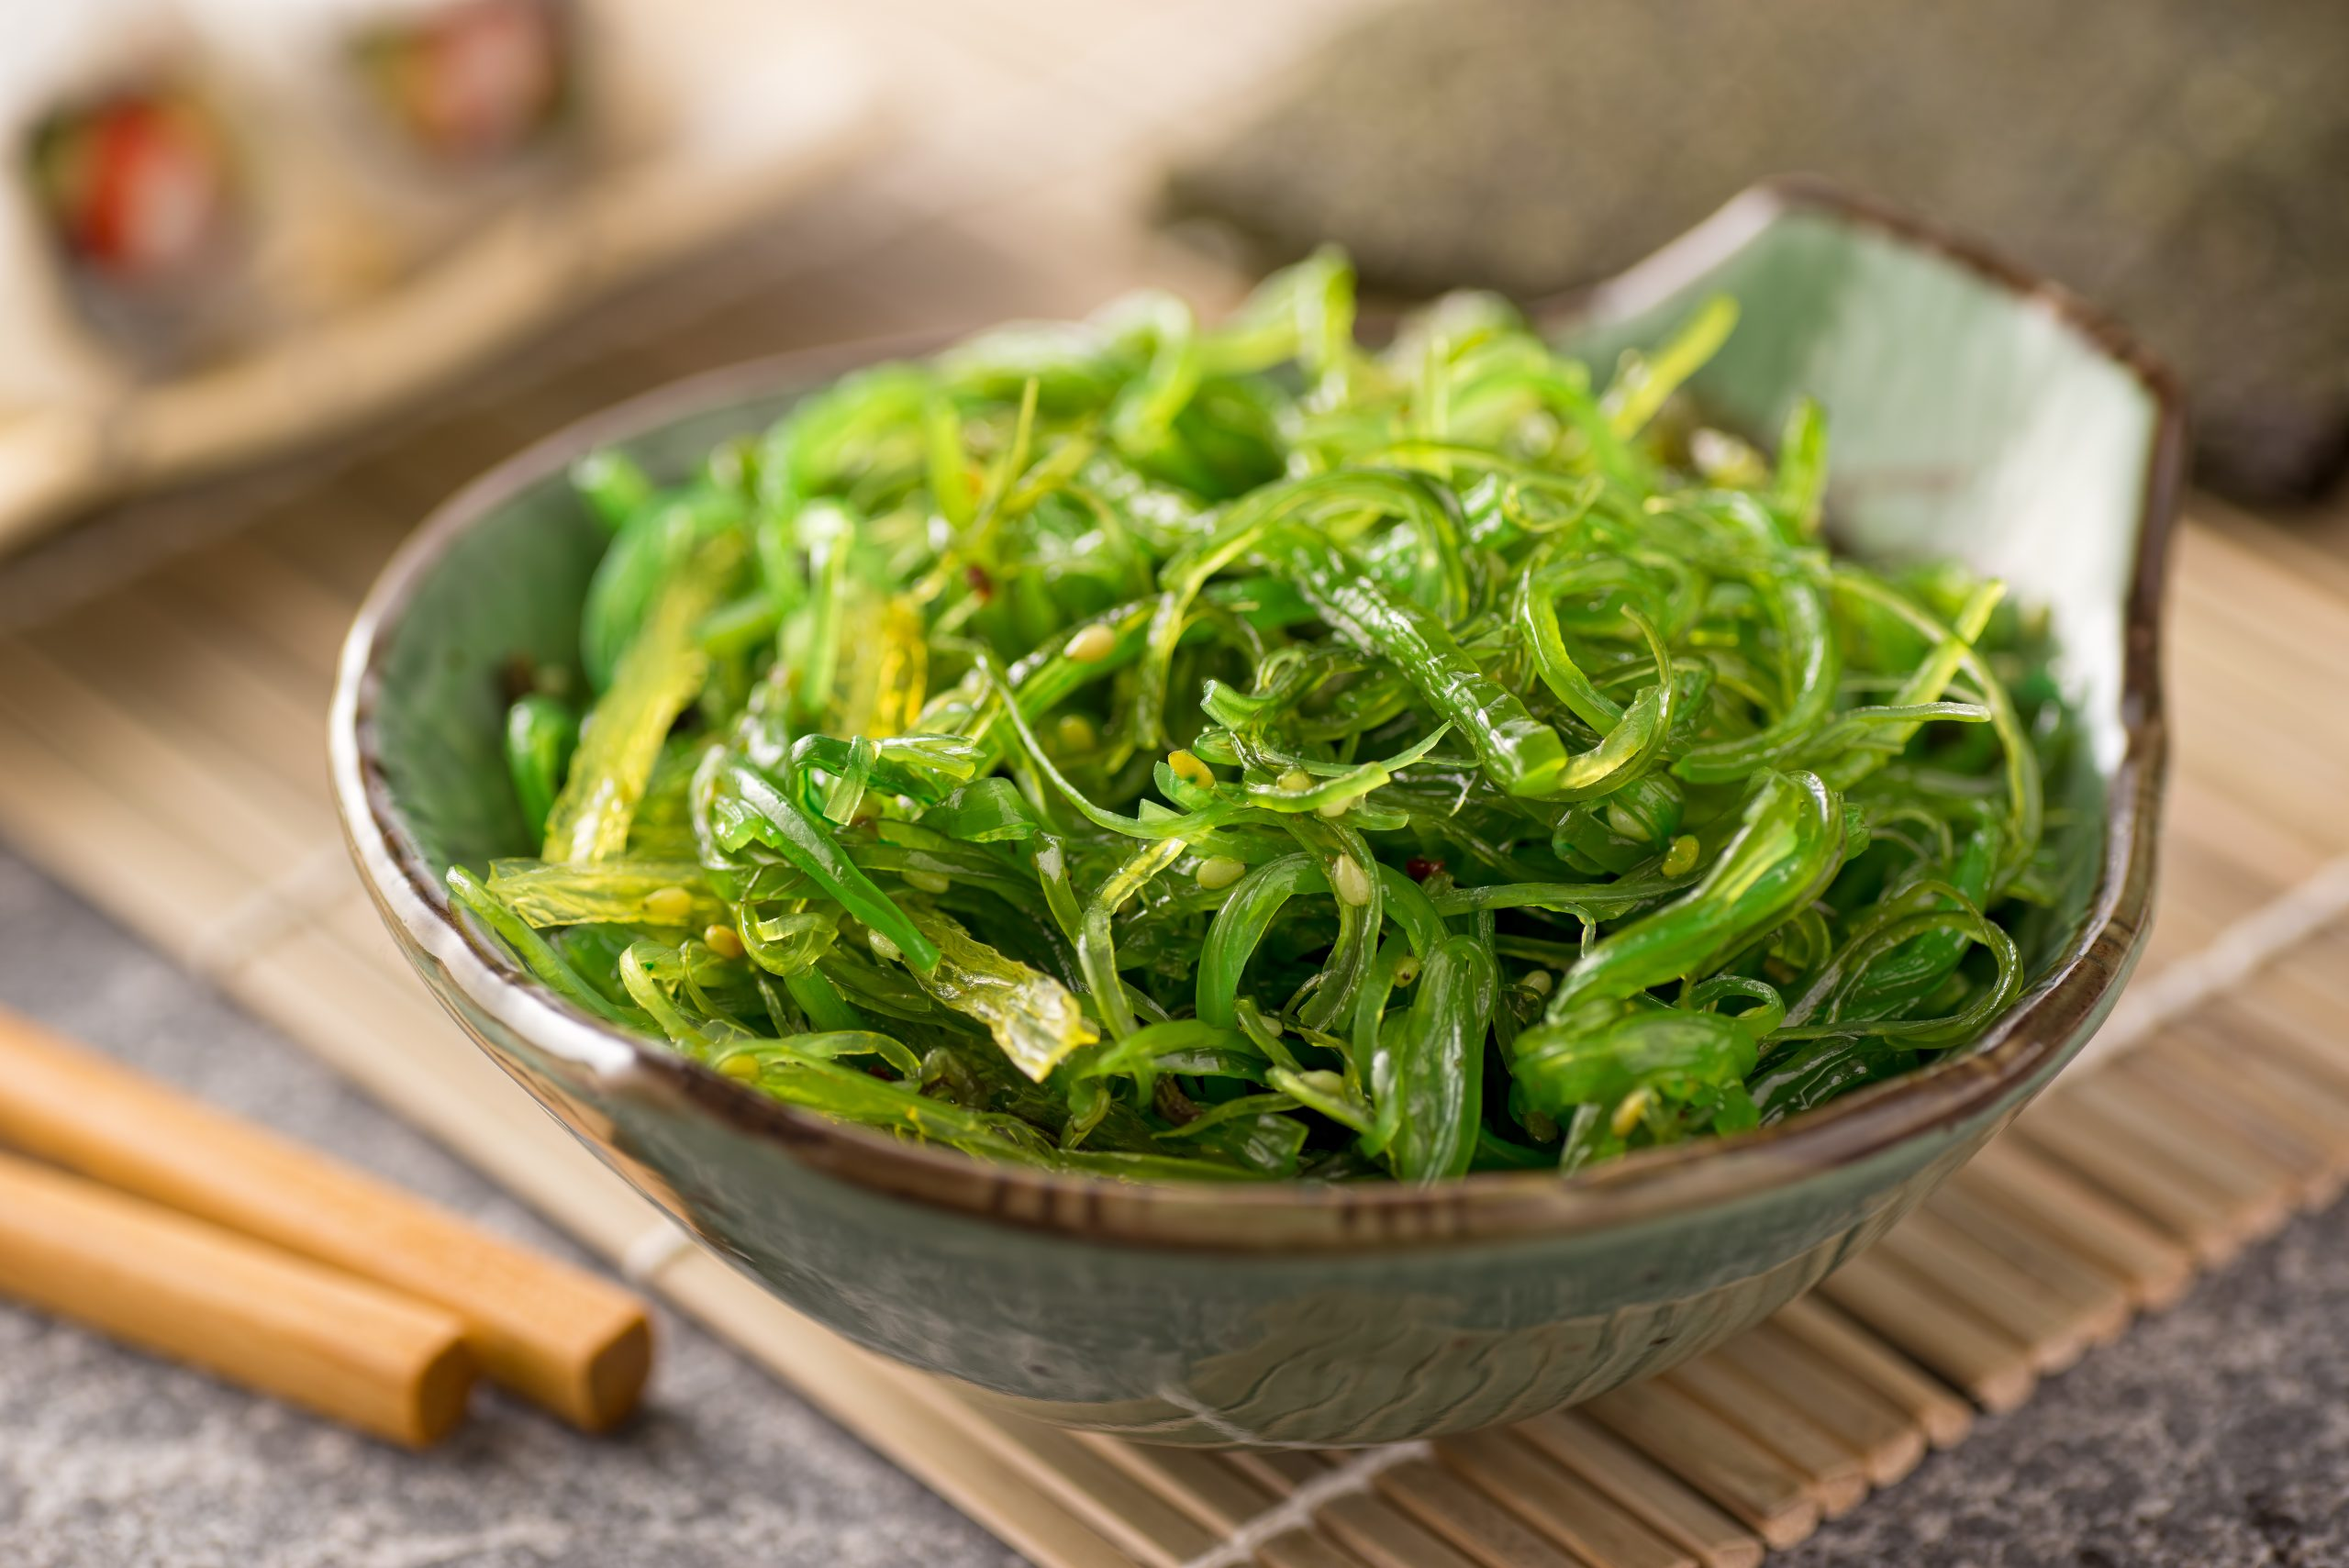 Sea Vegetables and Seaweed is wonderful for your thyroid! See more at jenbaucom.com #seaweed #thyroidhealth #seavegetables